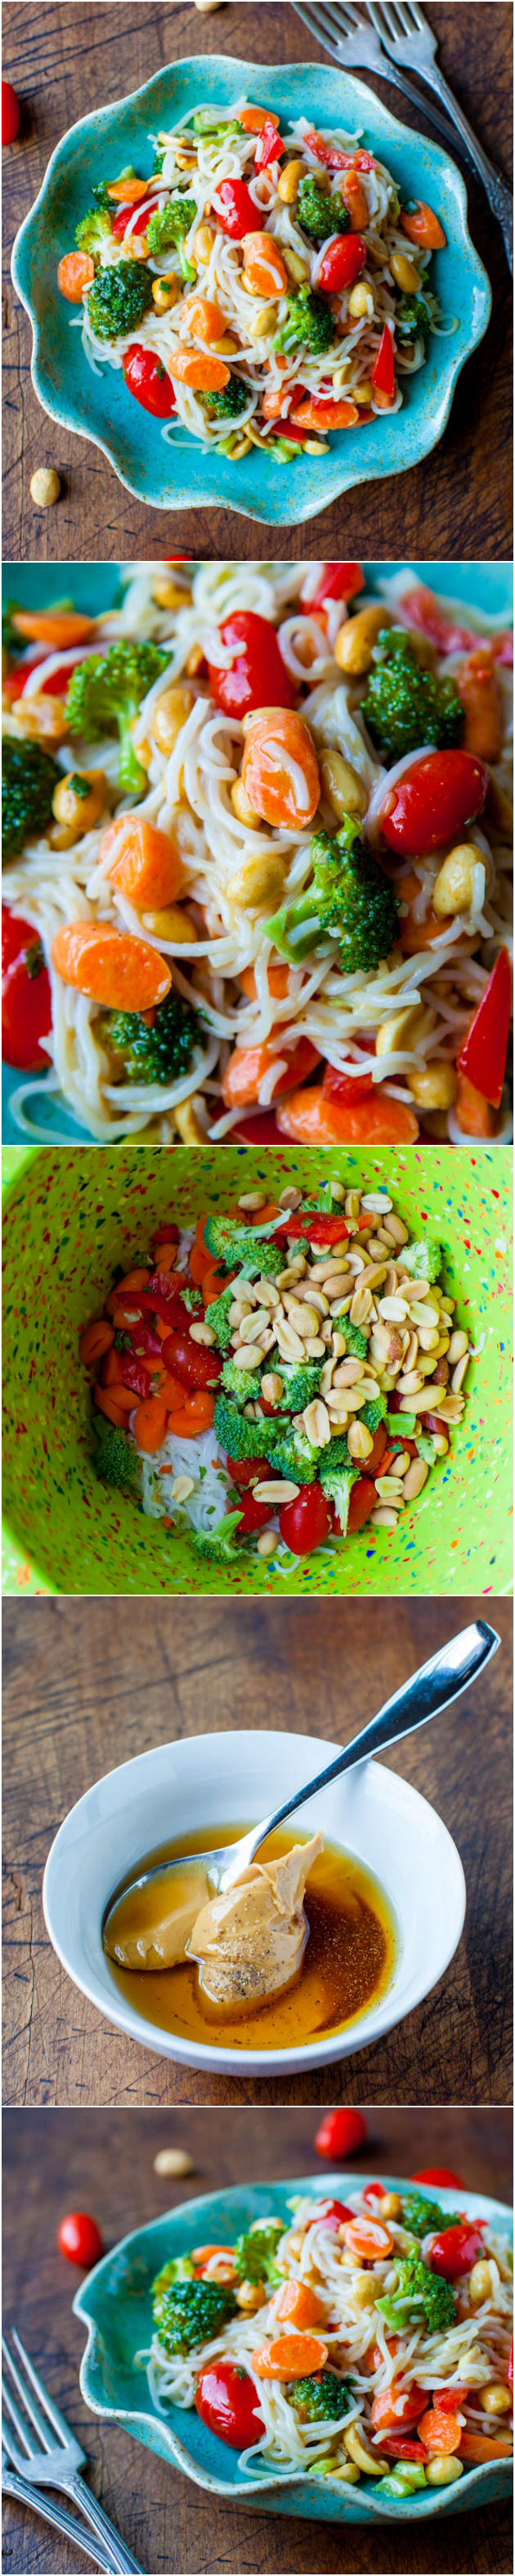 Peanut Noodles with Mixed Vegetables and Peanut Sauce process and blue bowl